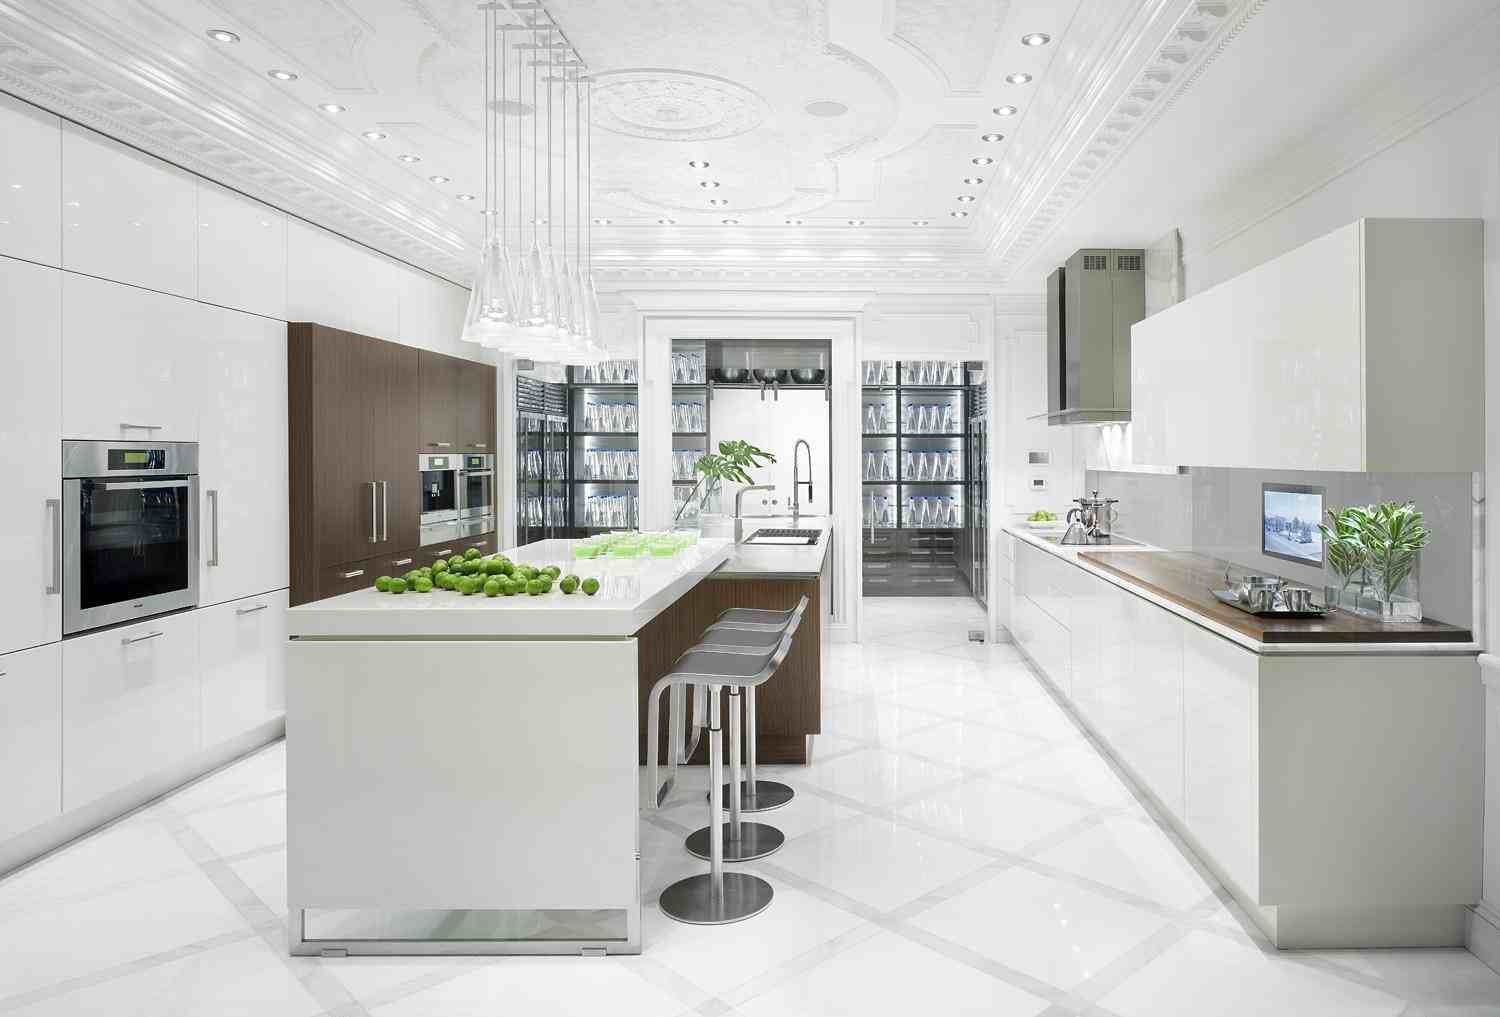 Best ideas about White Kitchen Ideas . Save or Pin Shades of white kitchen Now.